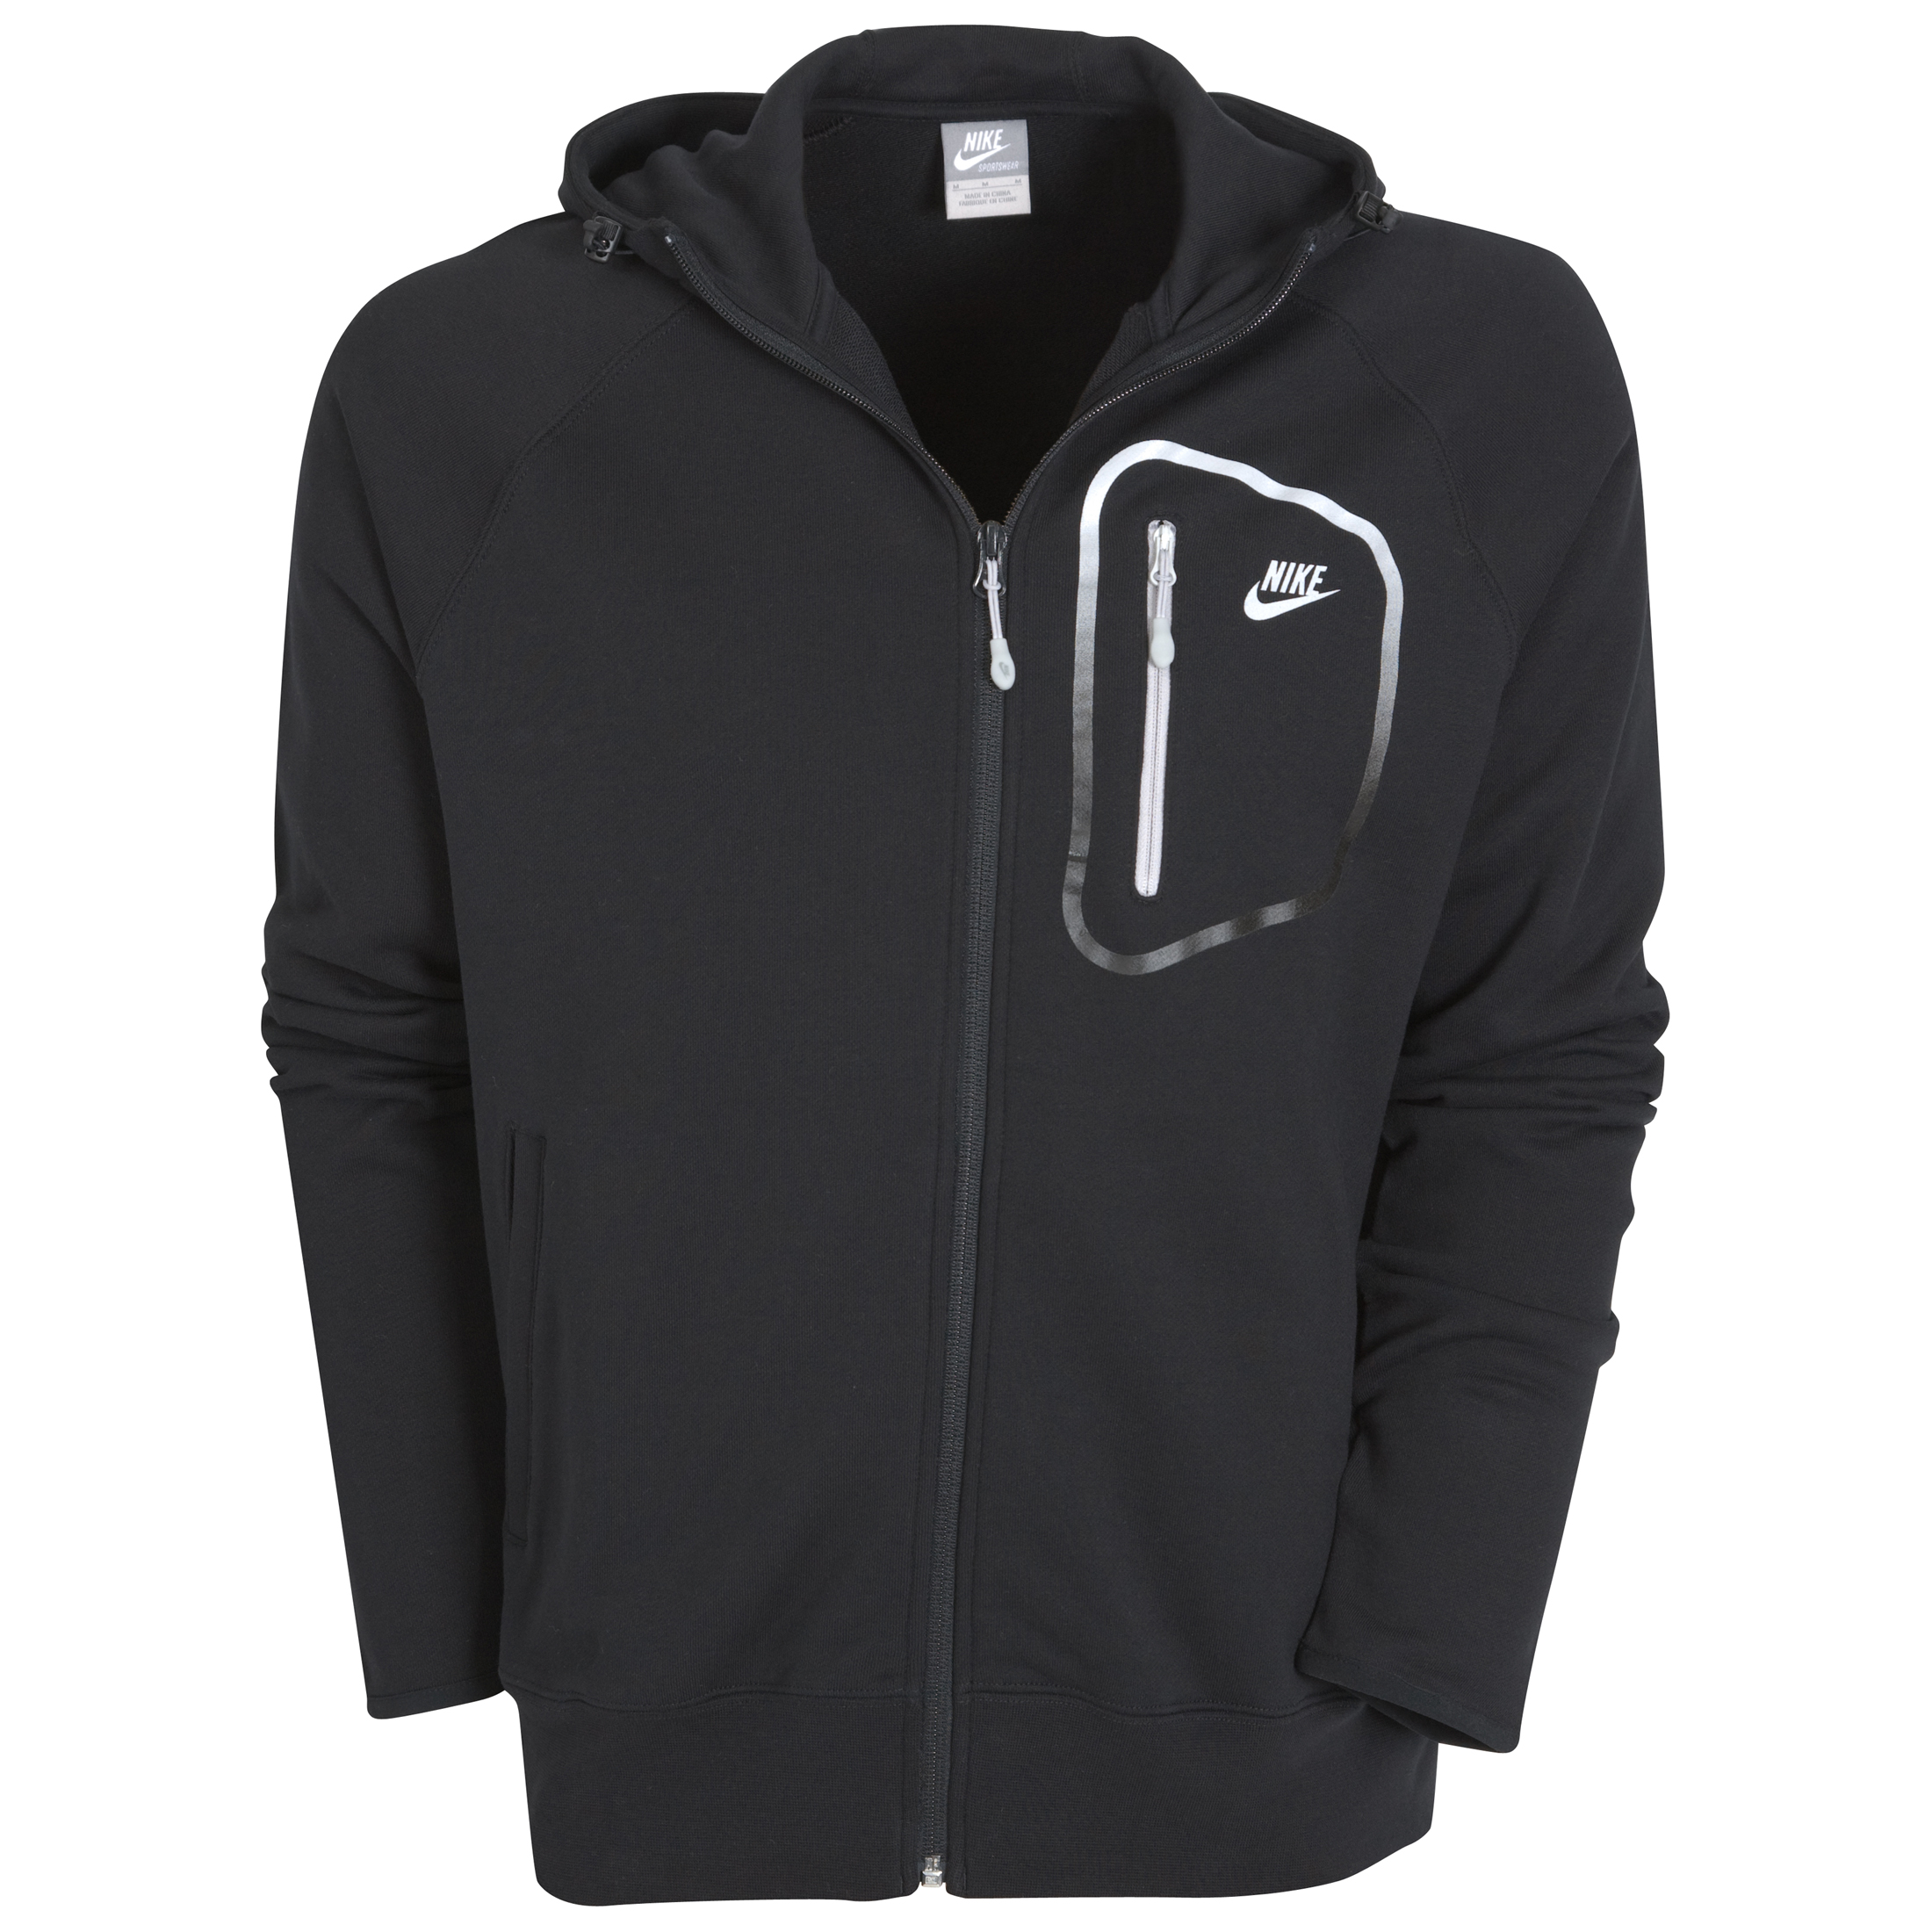 Nike Tech Full Zip Hoodie - Black/Tech Grey